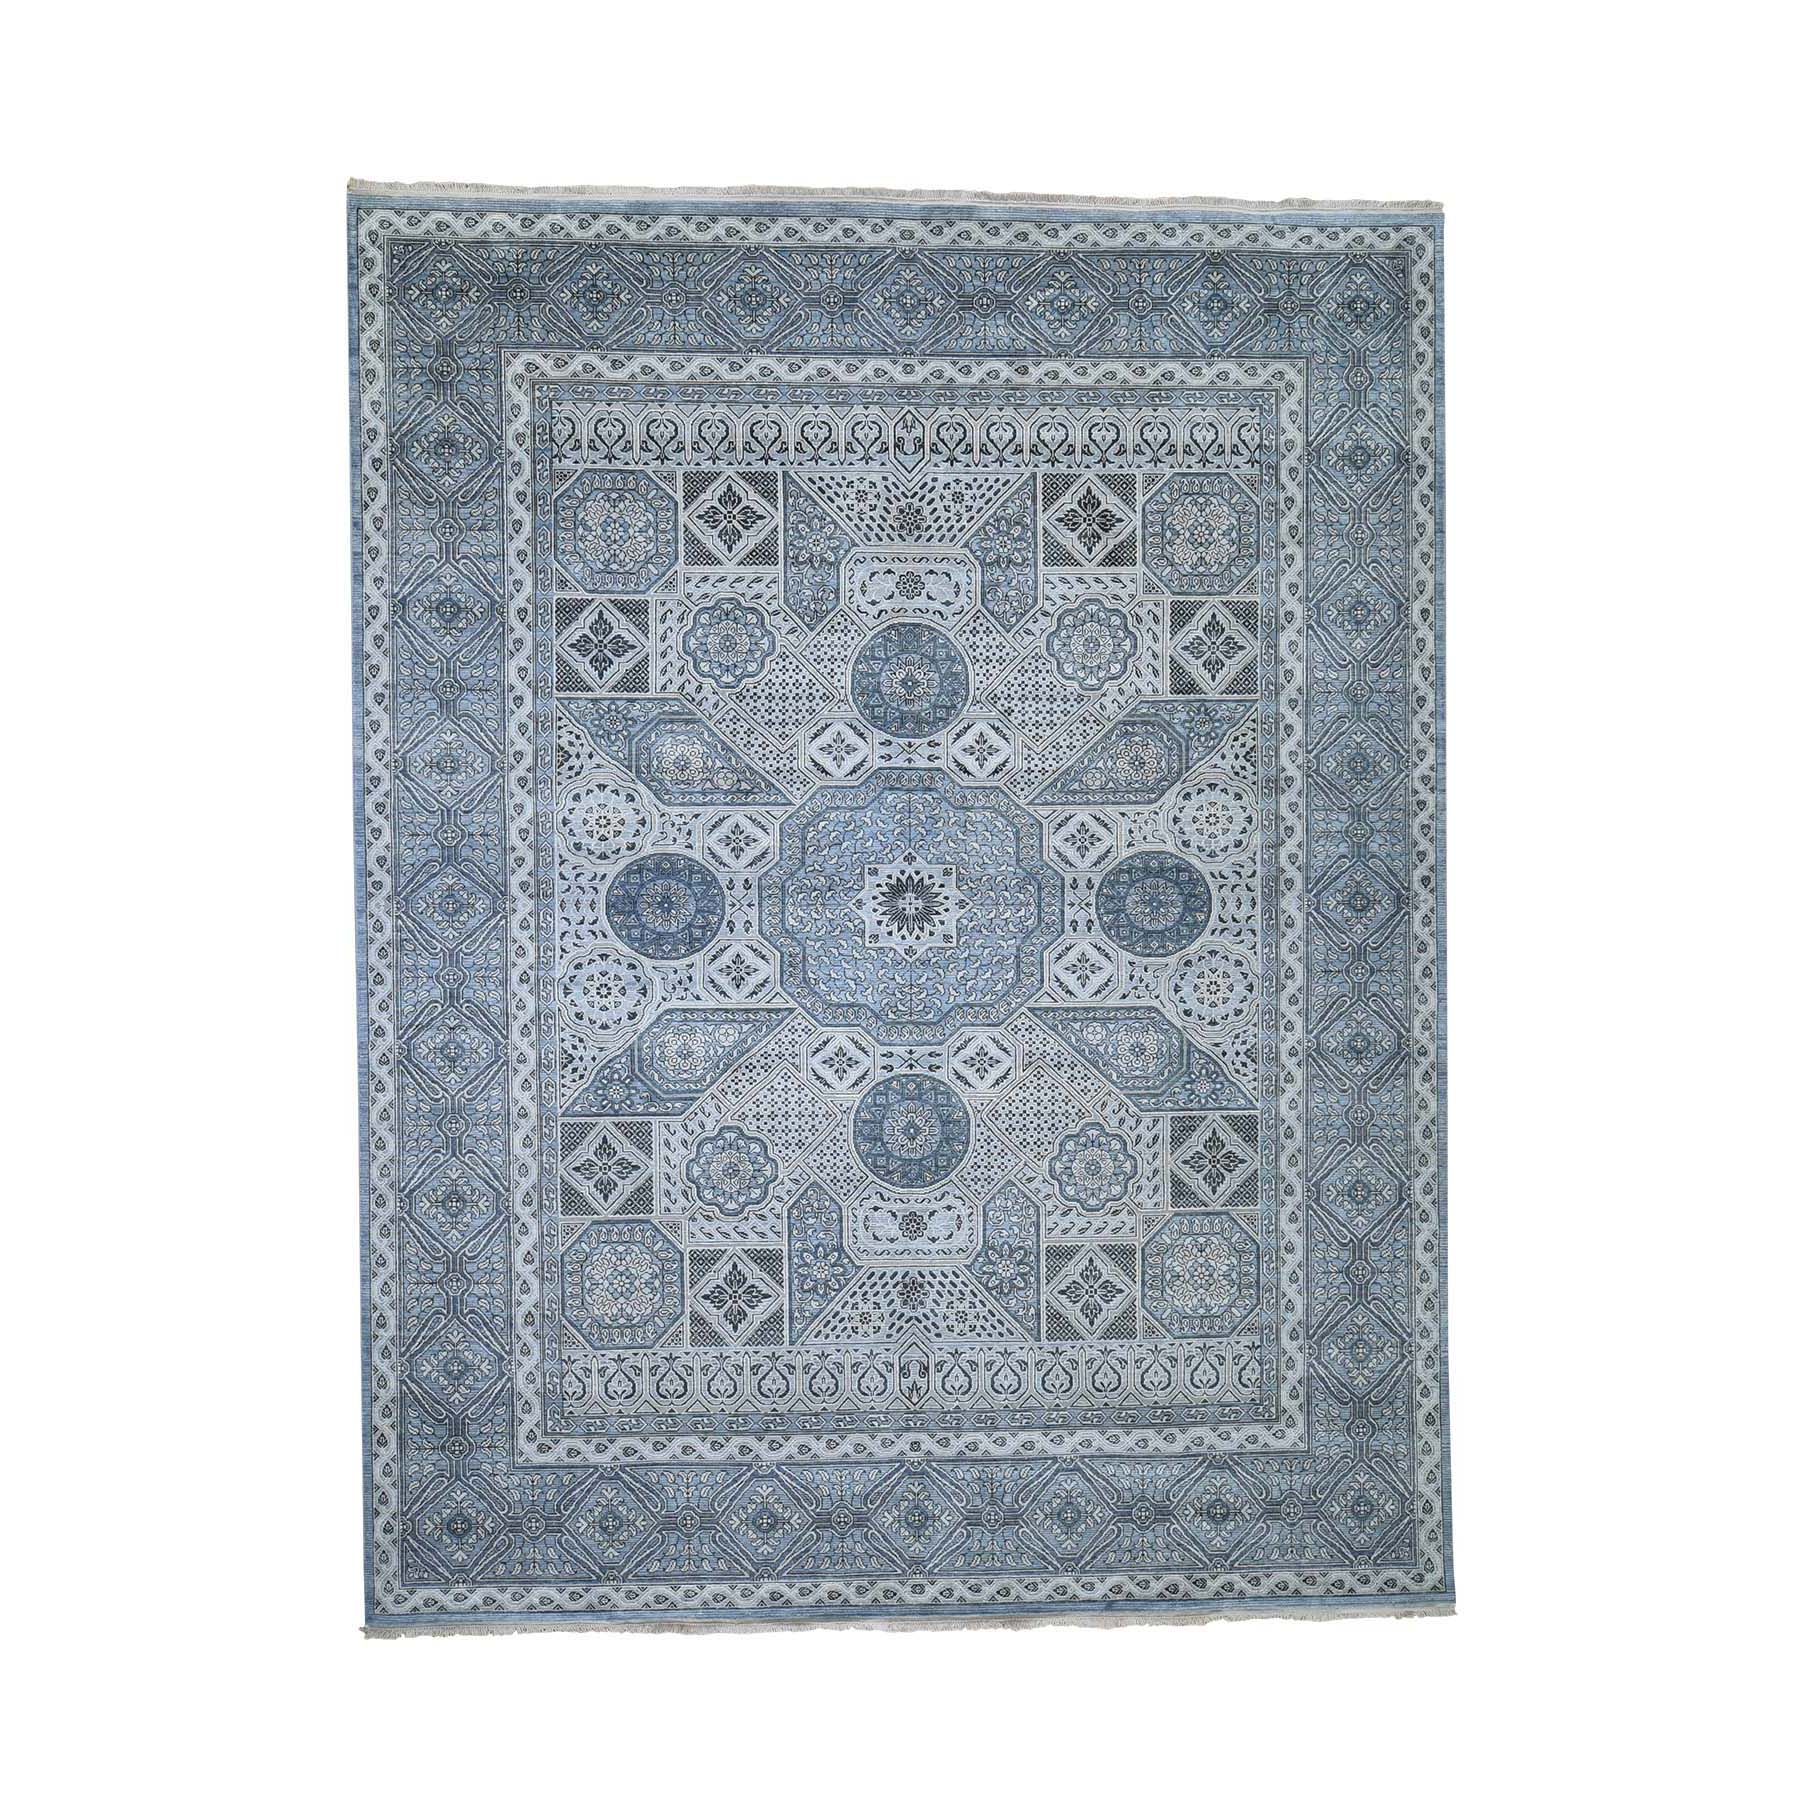 "9'x11'8"" Textured Pure Silk With Mamluk Design Hand-Knotted Oriental Rug"